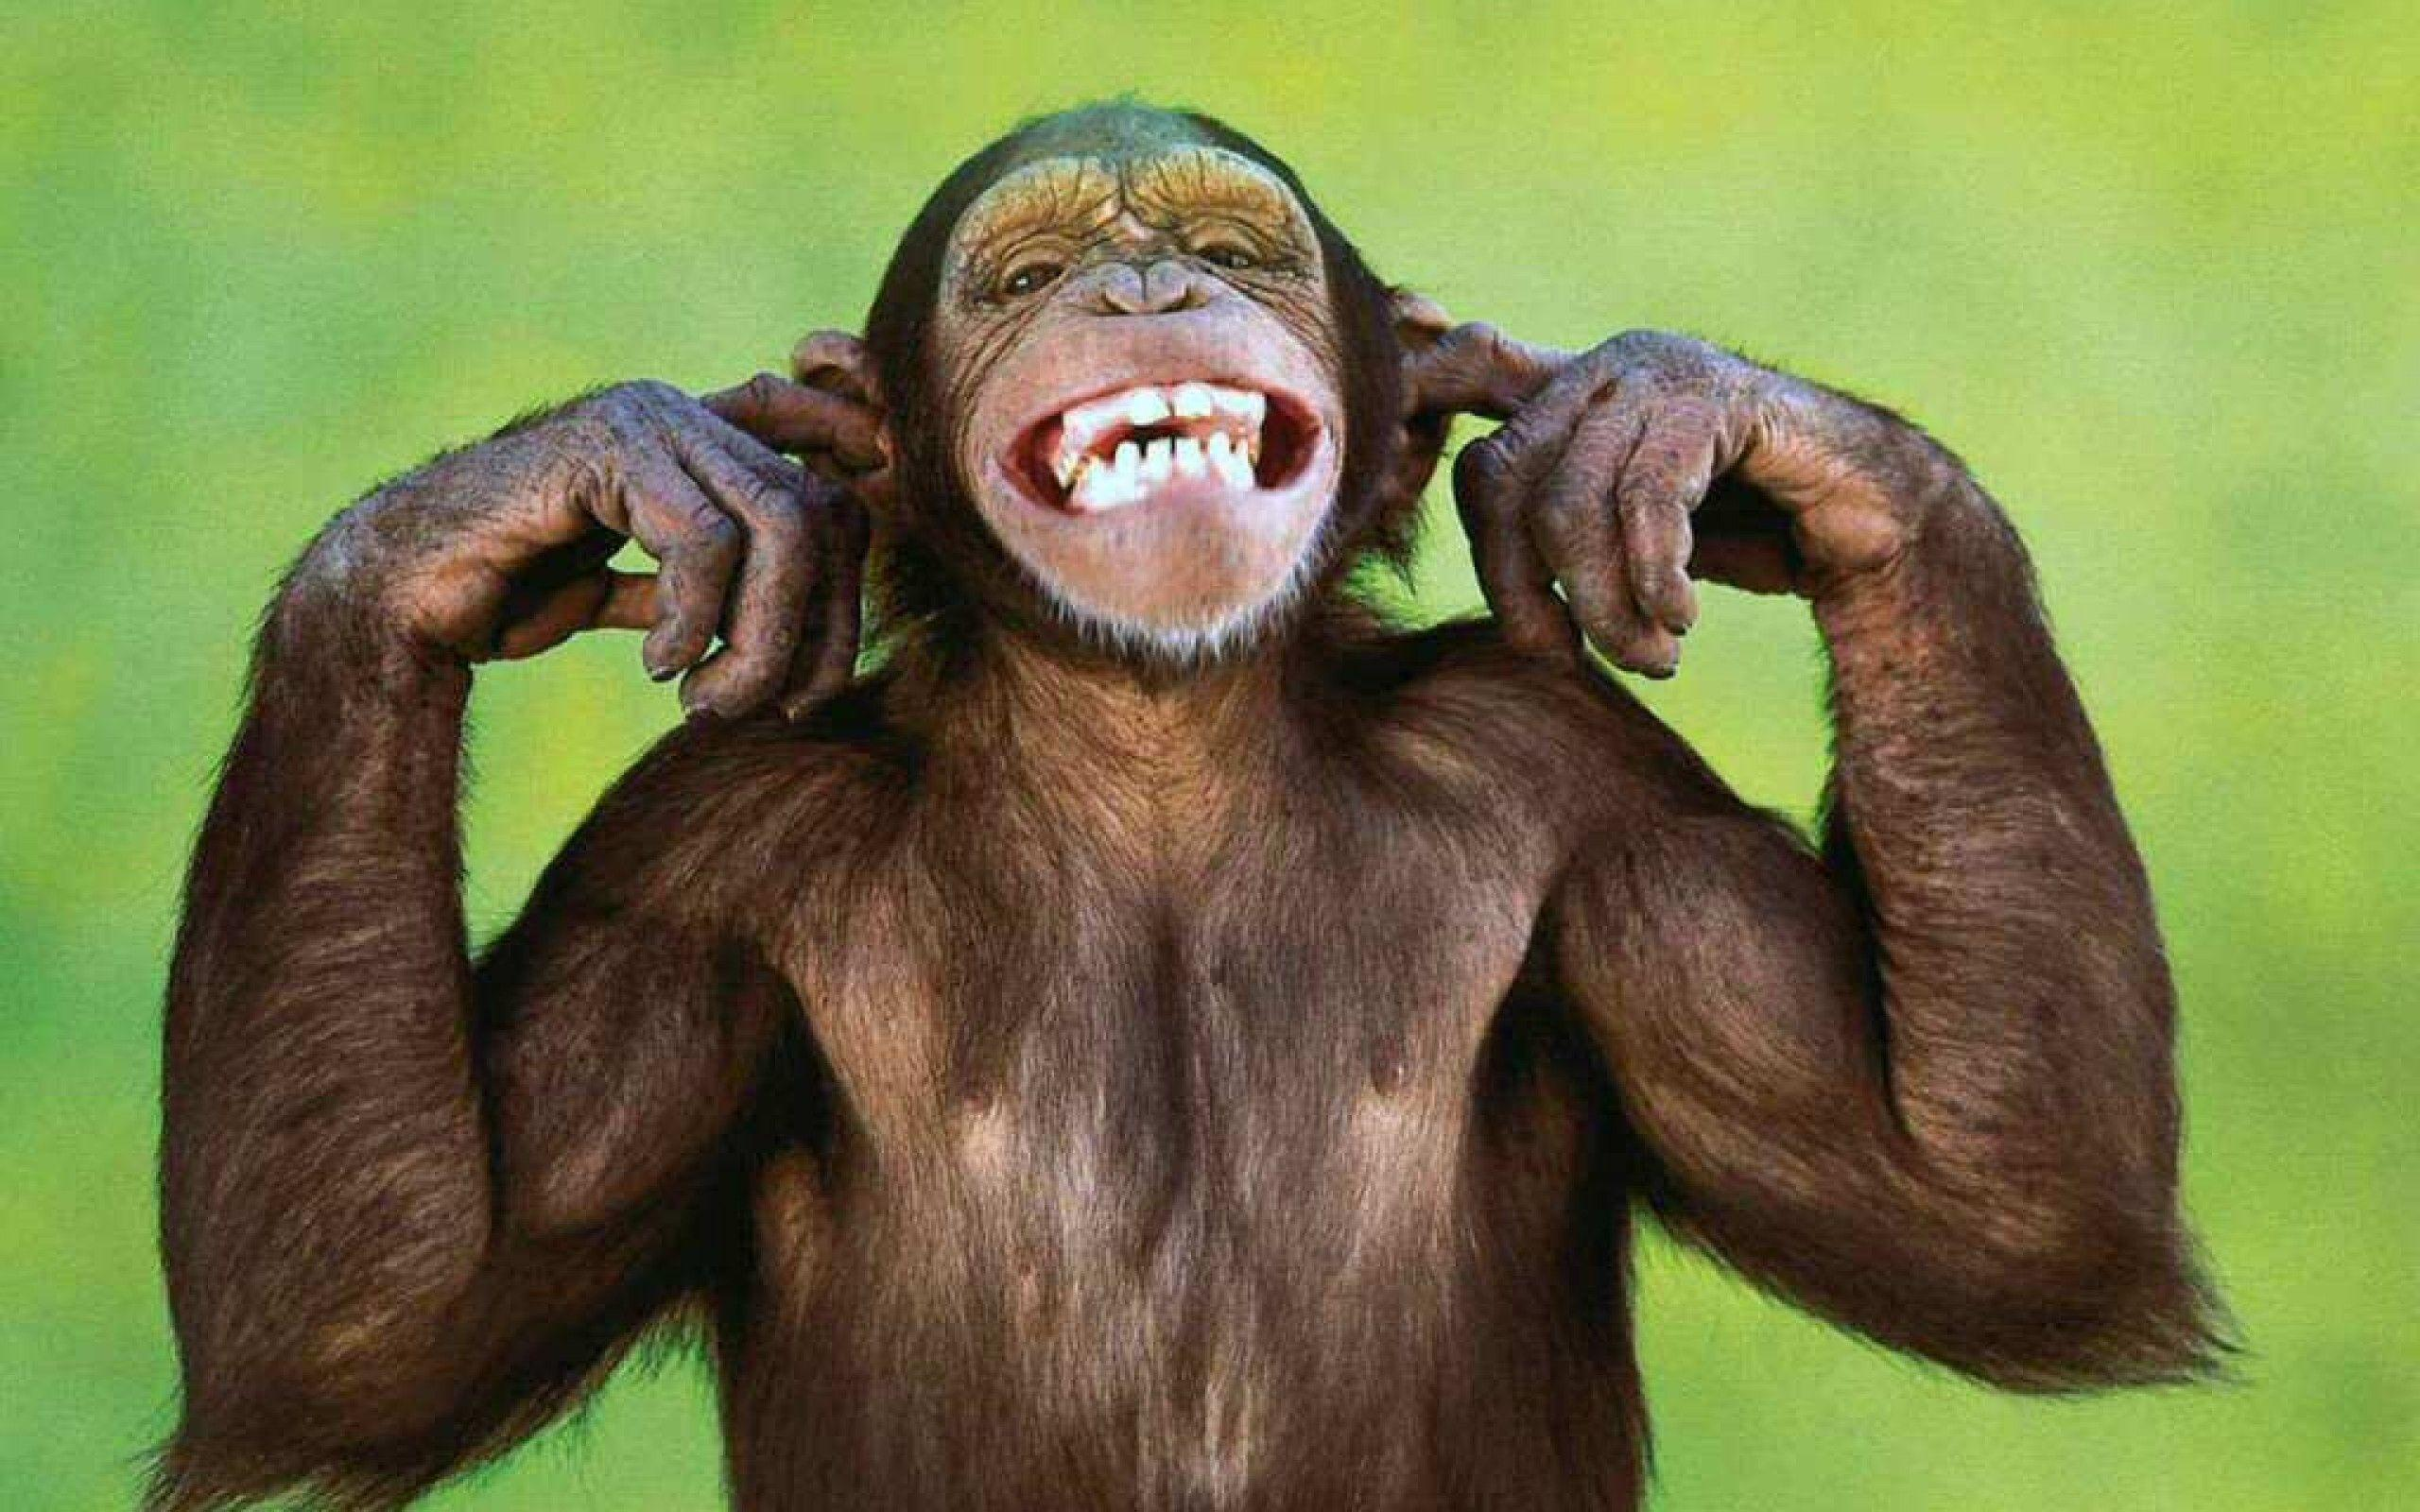 funny monkey wallpaper - photo #6